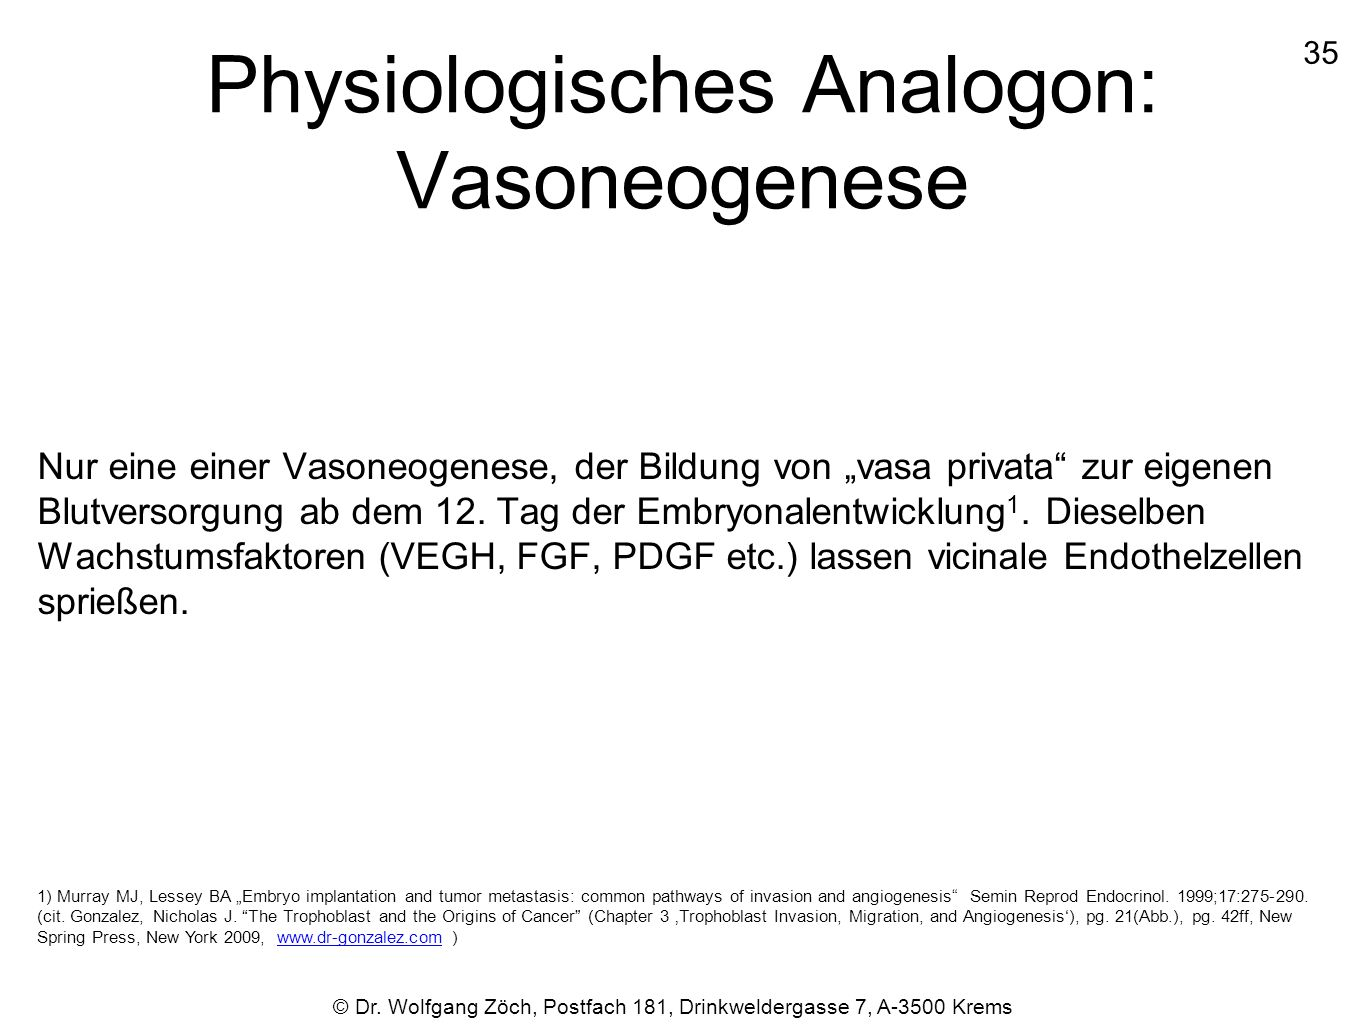 Physiologisches Analogon: Vasoneogenese